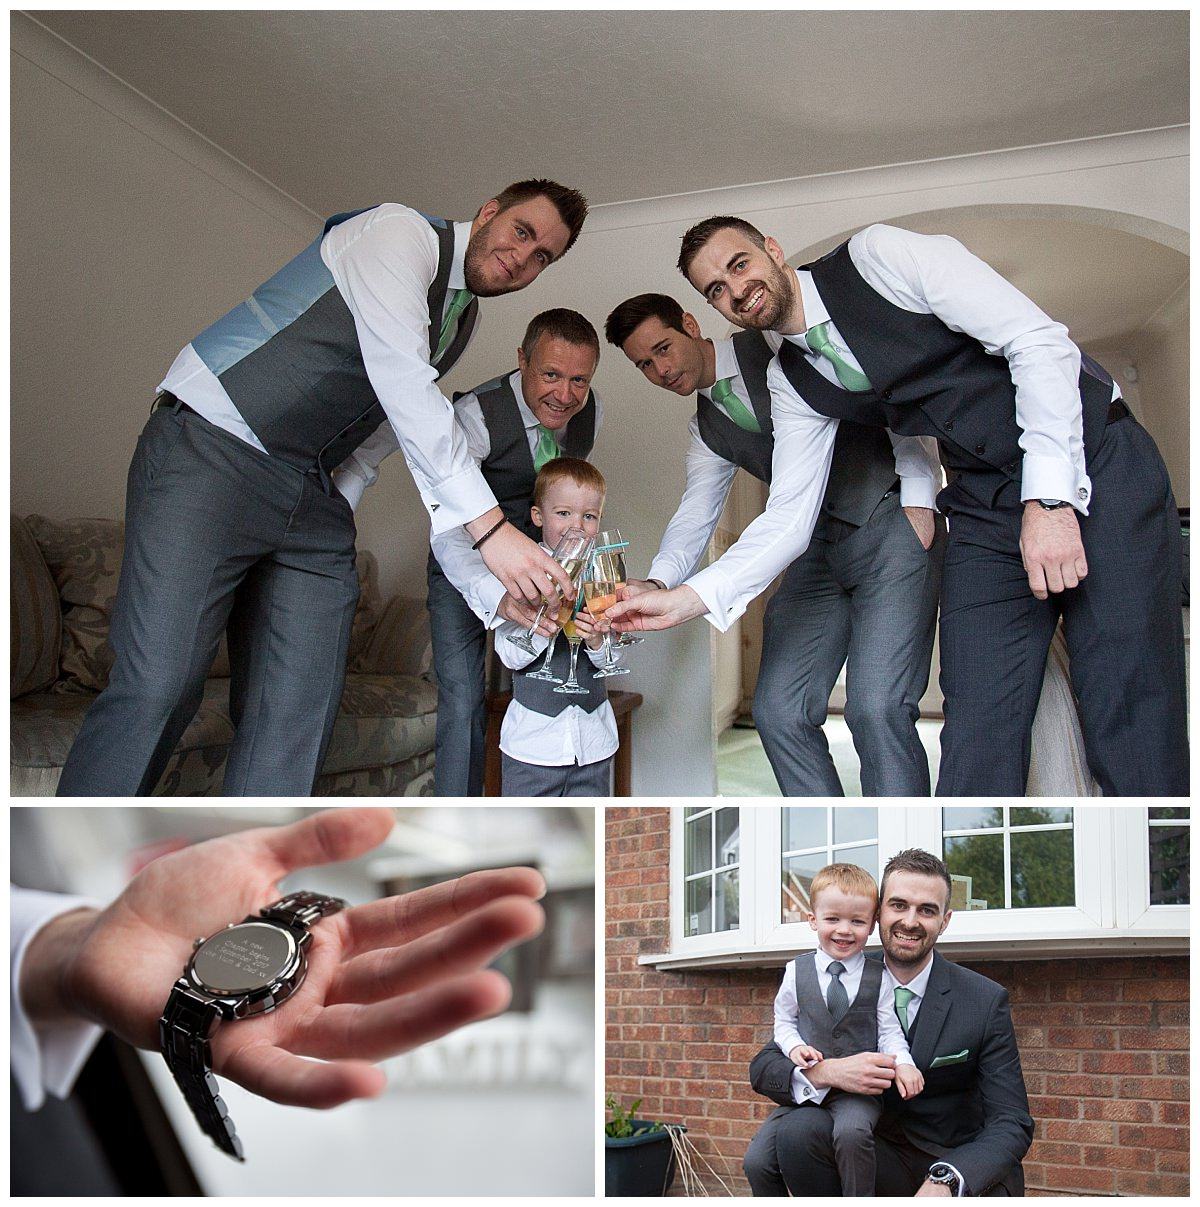 Groom with his groomsmen drinking champagne